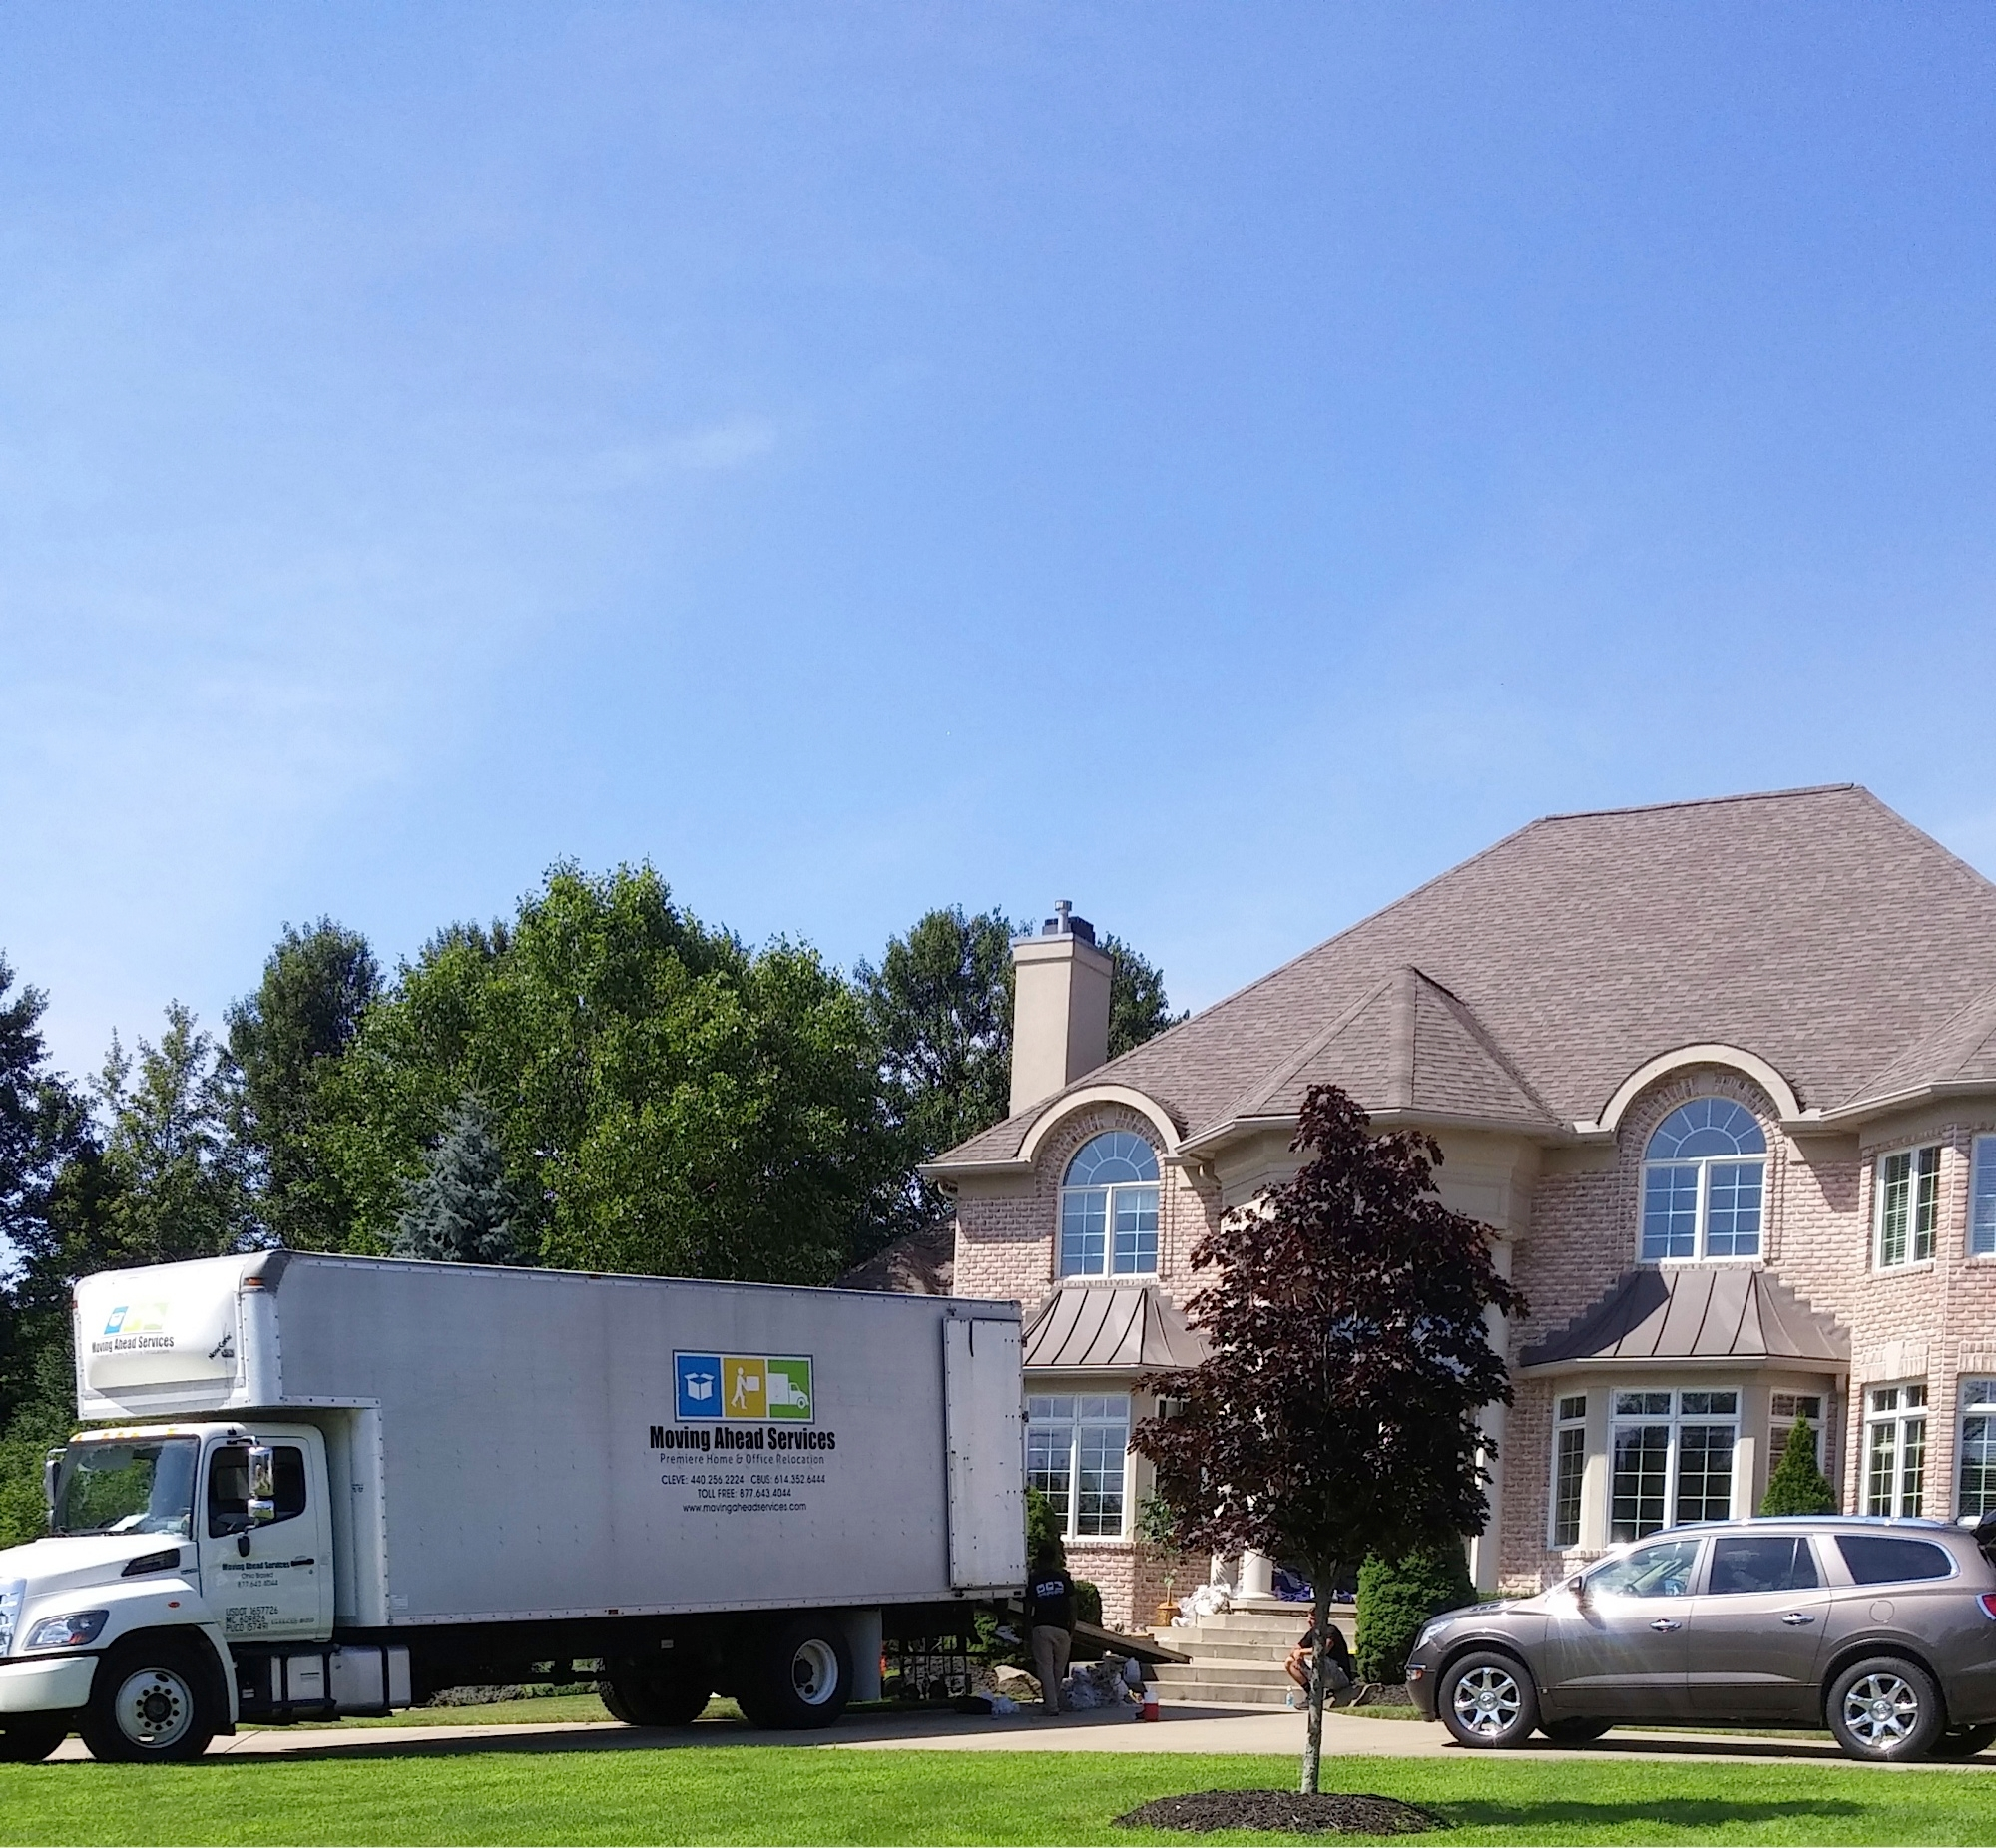 Moving Ahead Services At 3883 Business Park Dr Columbus